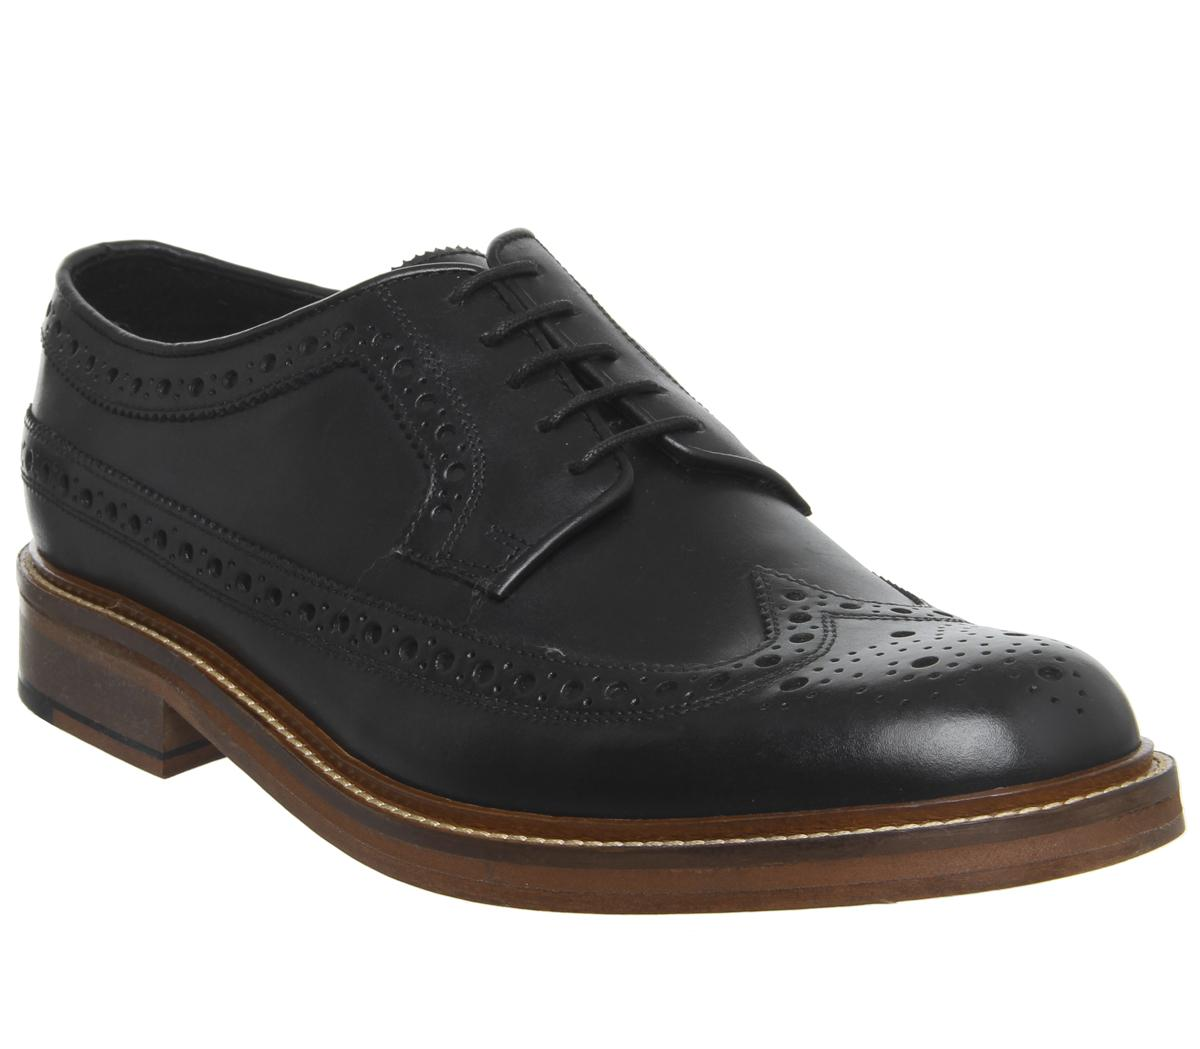 Lucre Brogues